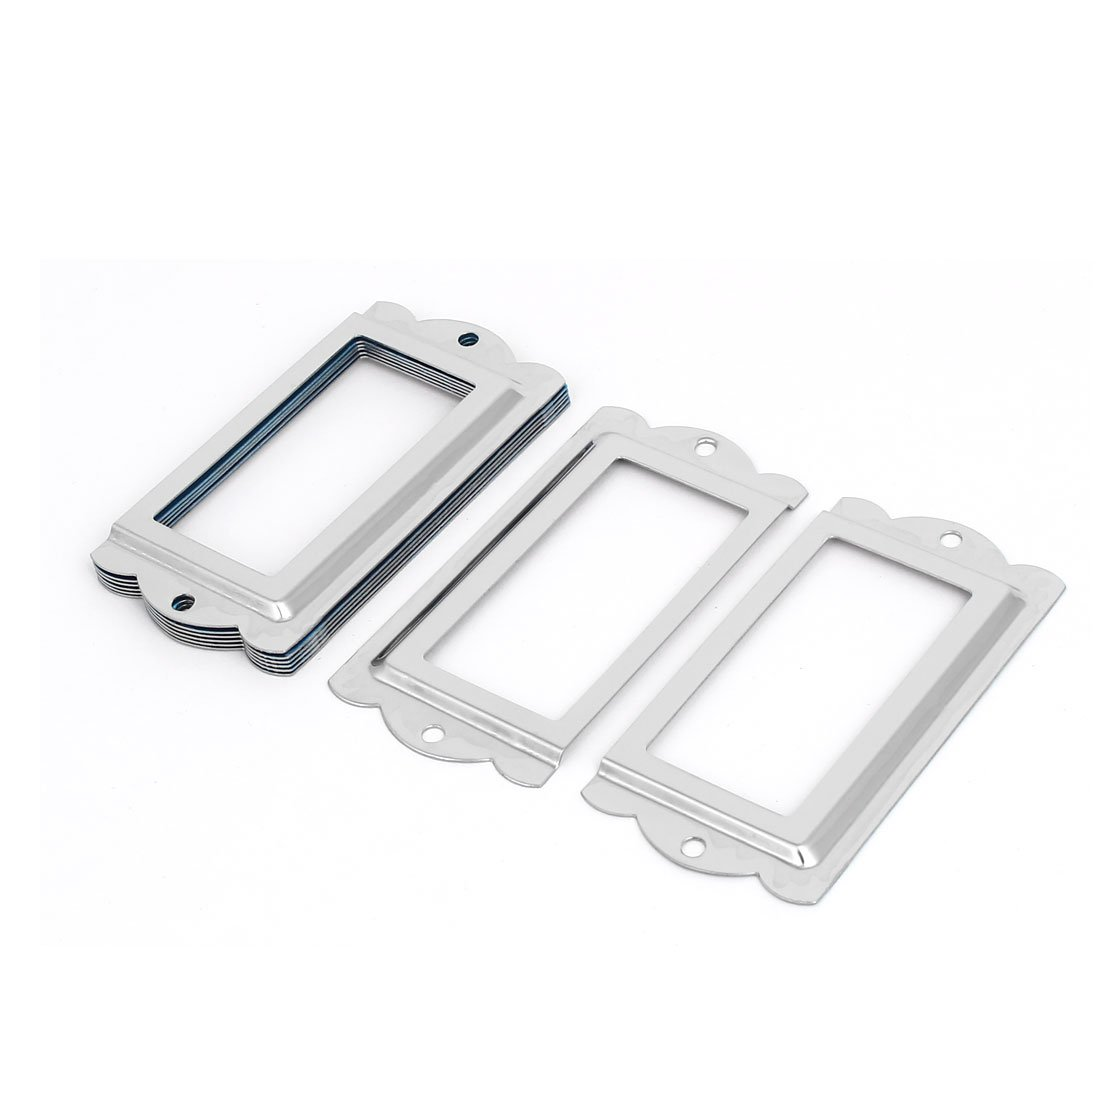 uxcell Library Office File Drawer 85mm x 42mm Tag Label Holders Frames Silver Tone 8PCS